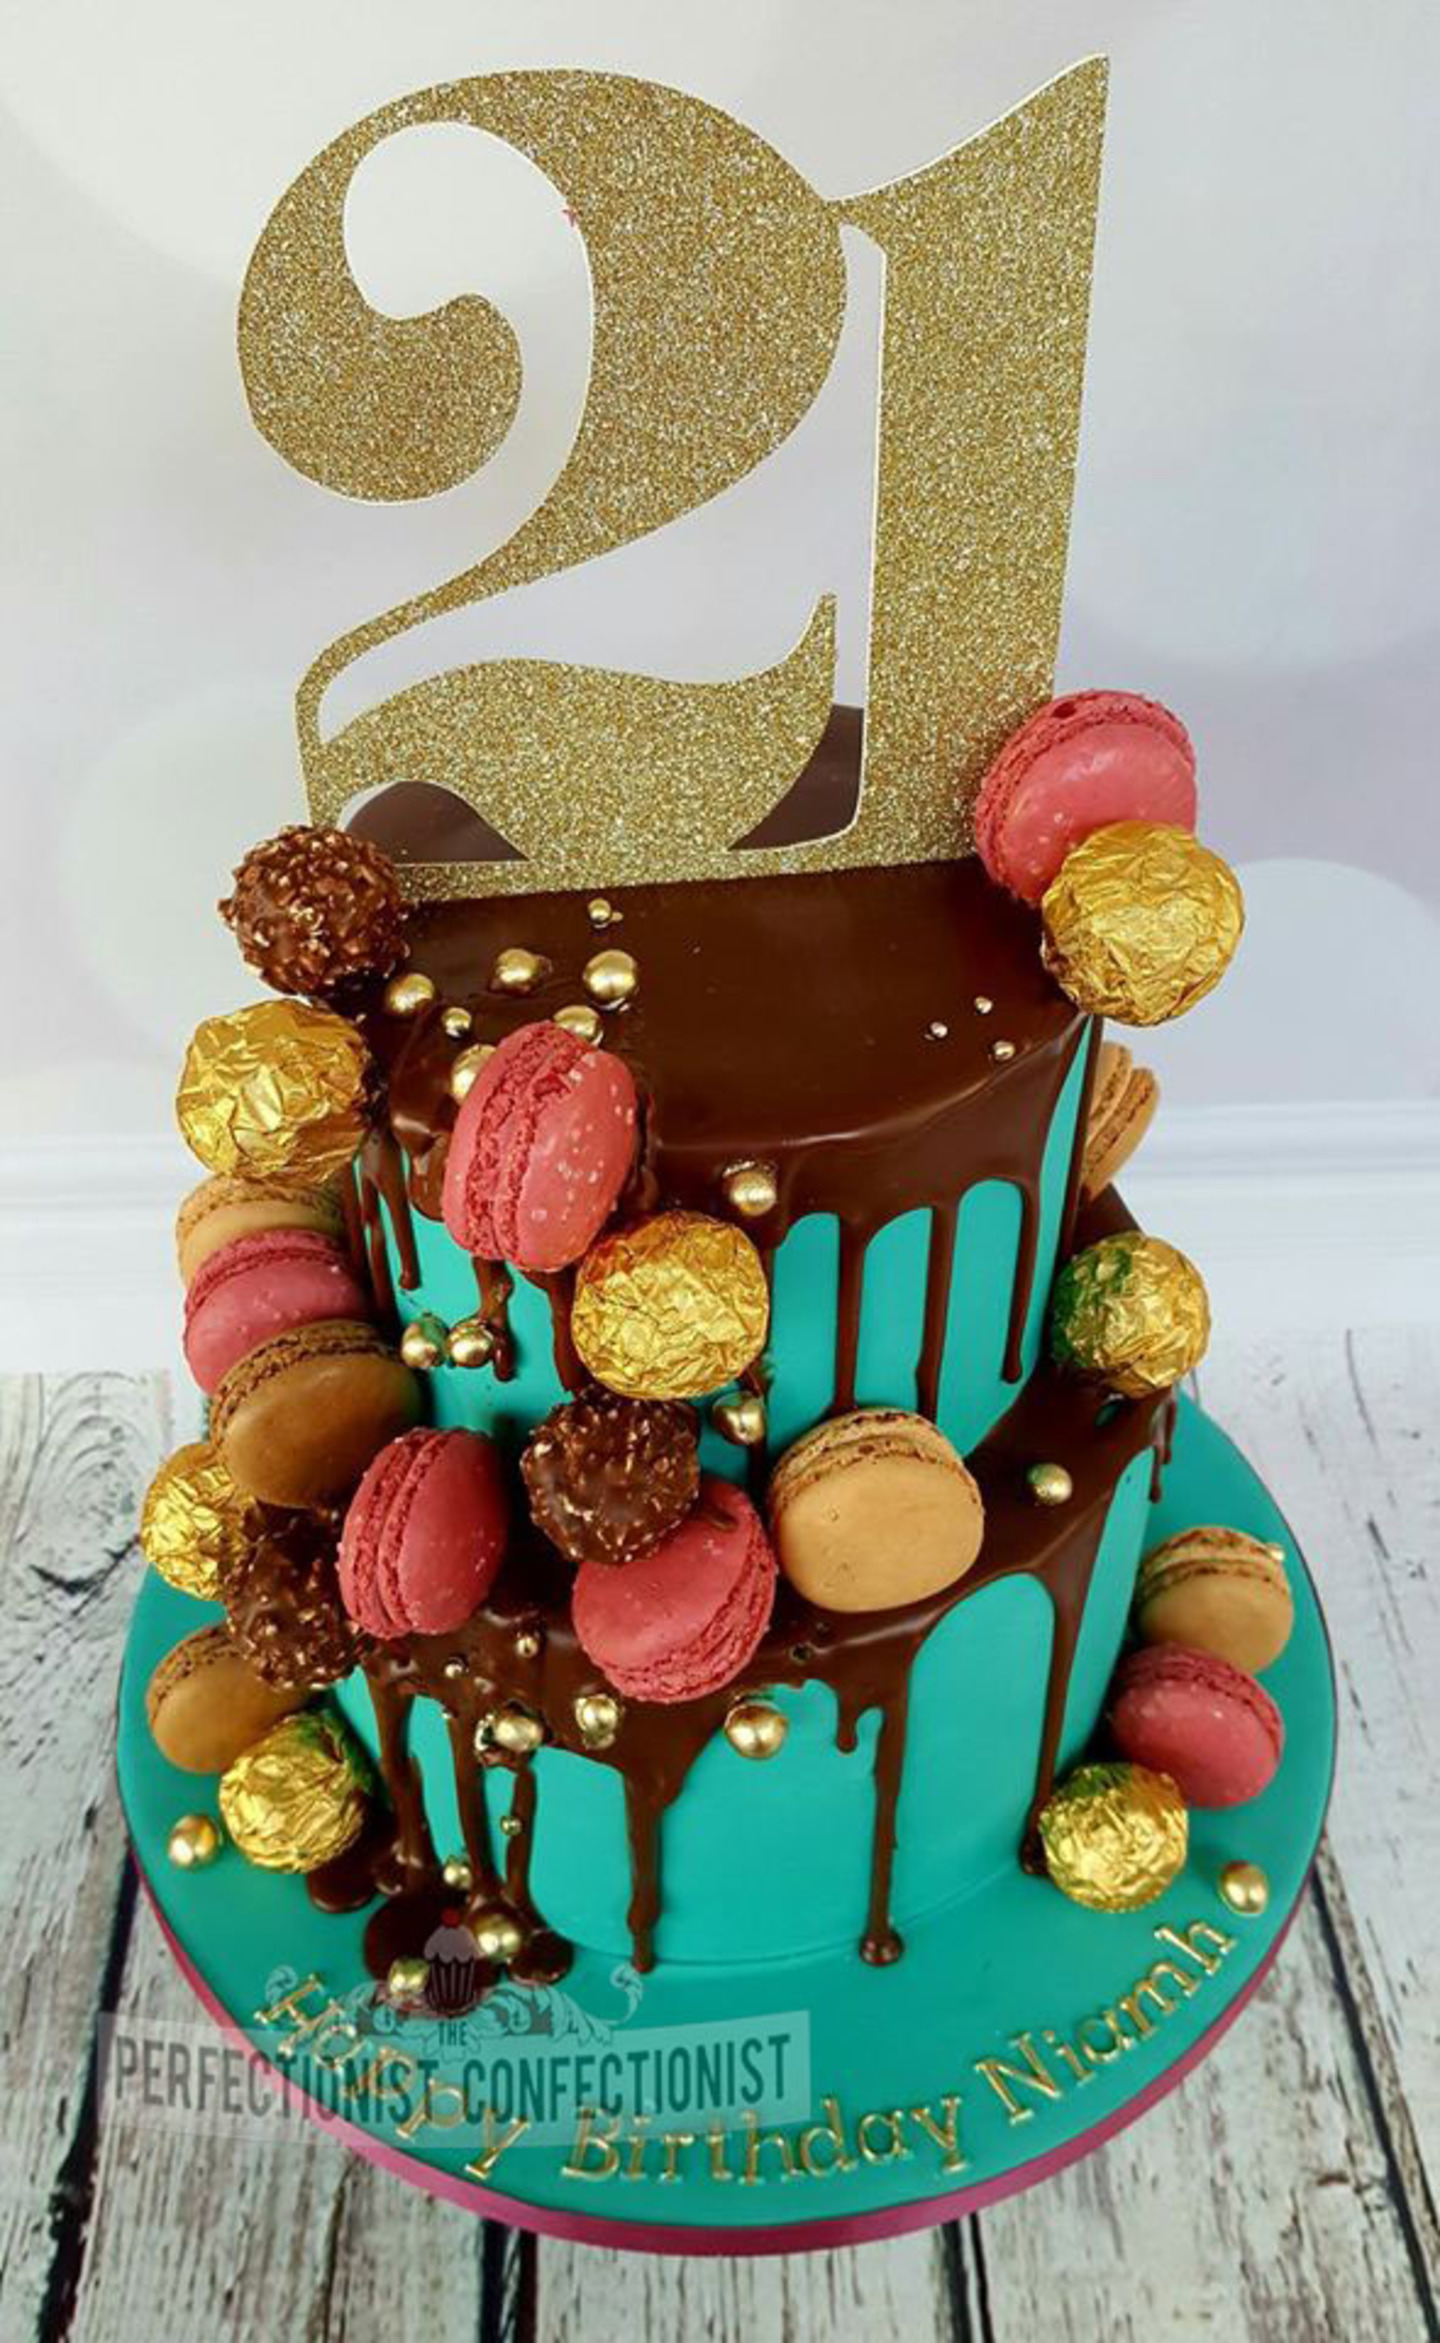 21st Birthday Cake Dublin Swords Malahide Kinsealy Drip Chocolate Macaron Celebration Novelty Topper 21 Girl